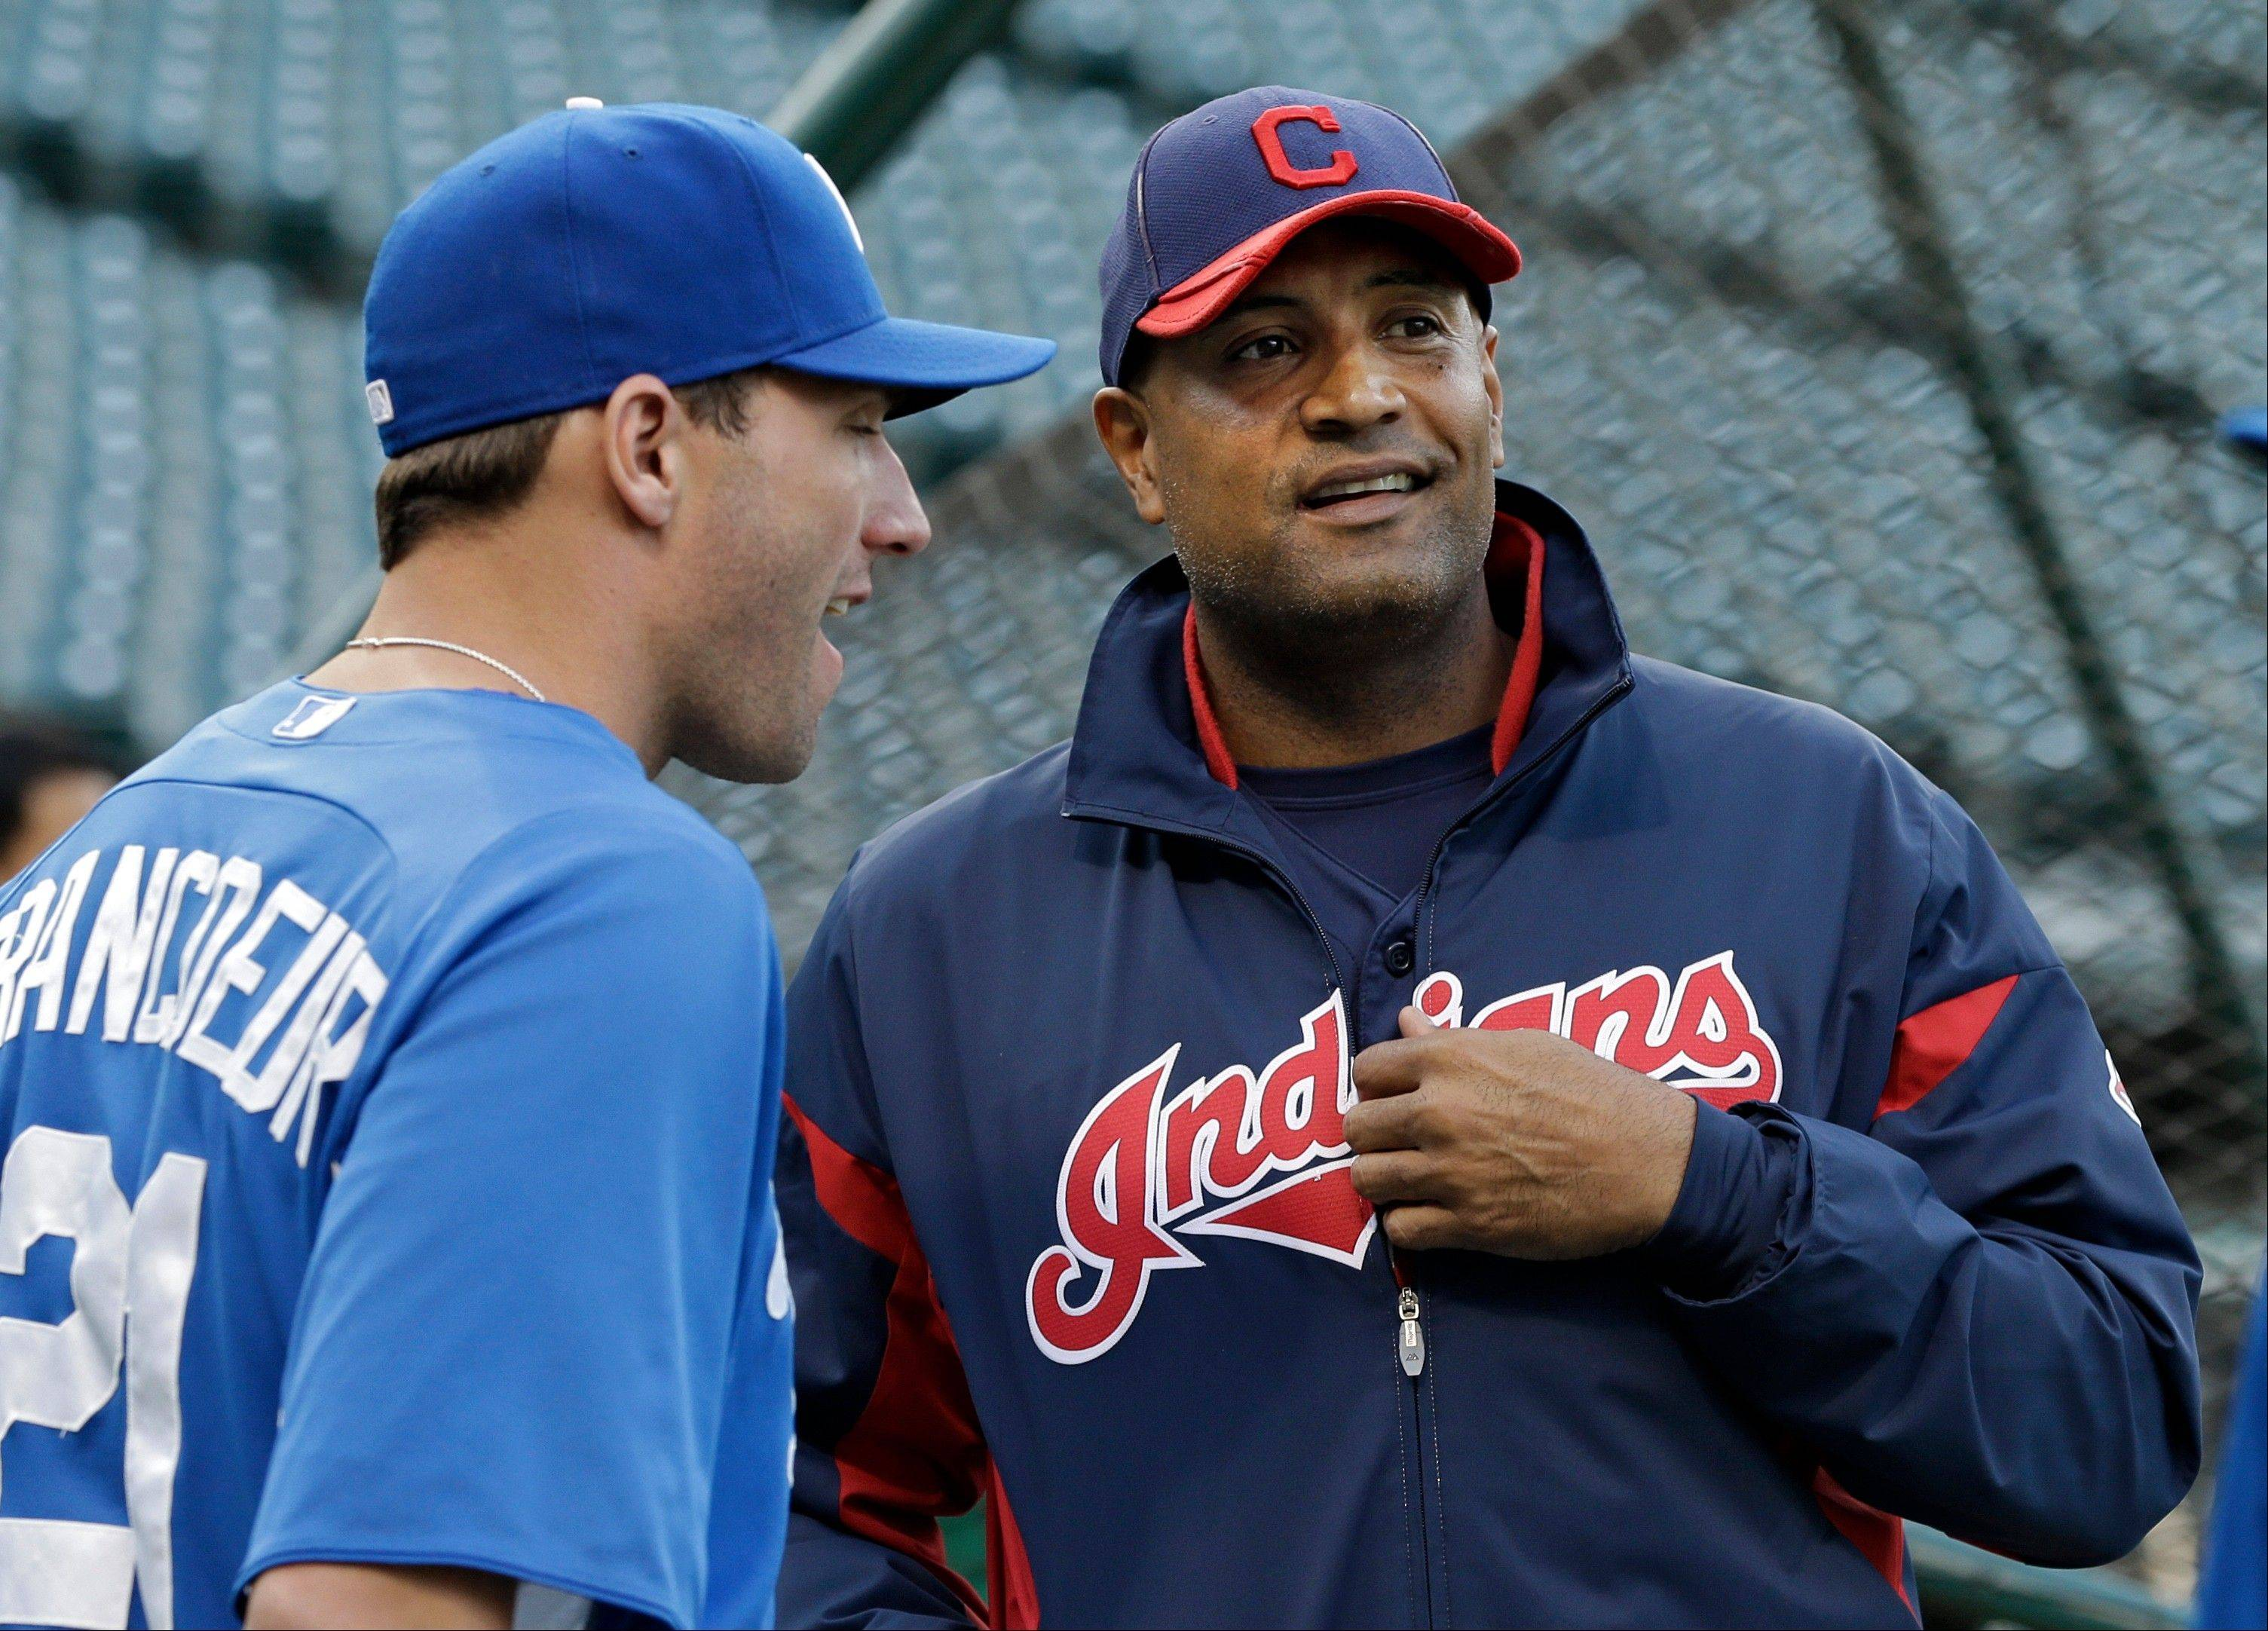 Indians interim manager Sandy Alomar Jr. talks with Royals right fielder Jeff Francoeur during batting practice before Friday's game in Cleveland.